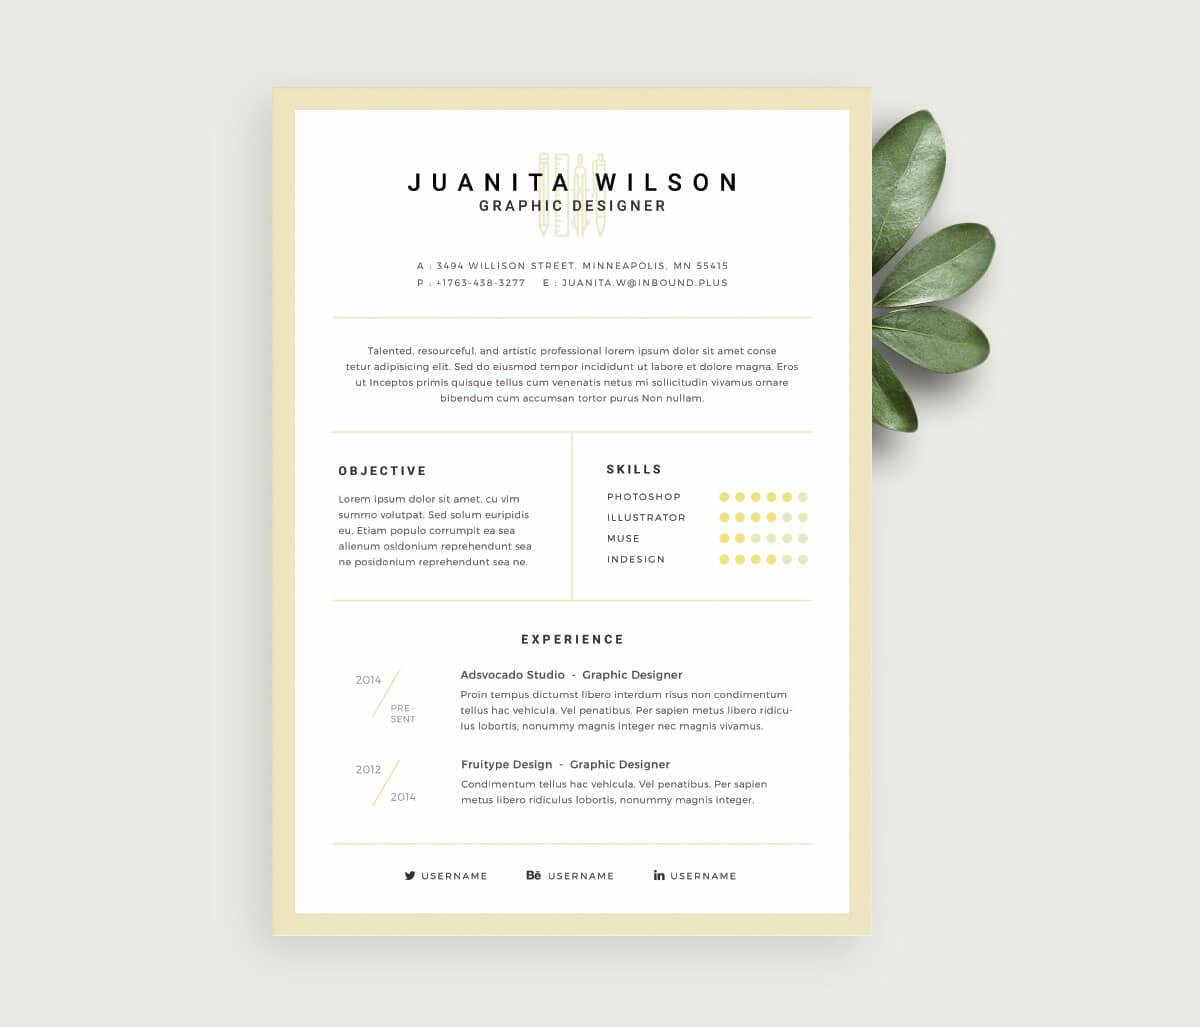 Free Sample Resume Templates Examples: Free Resume Templates: 17 Downloadable Resume Templates To Use